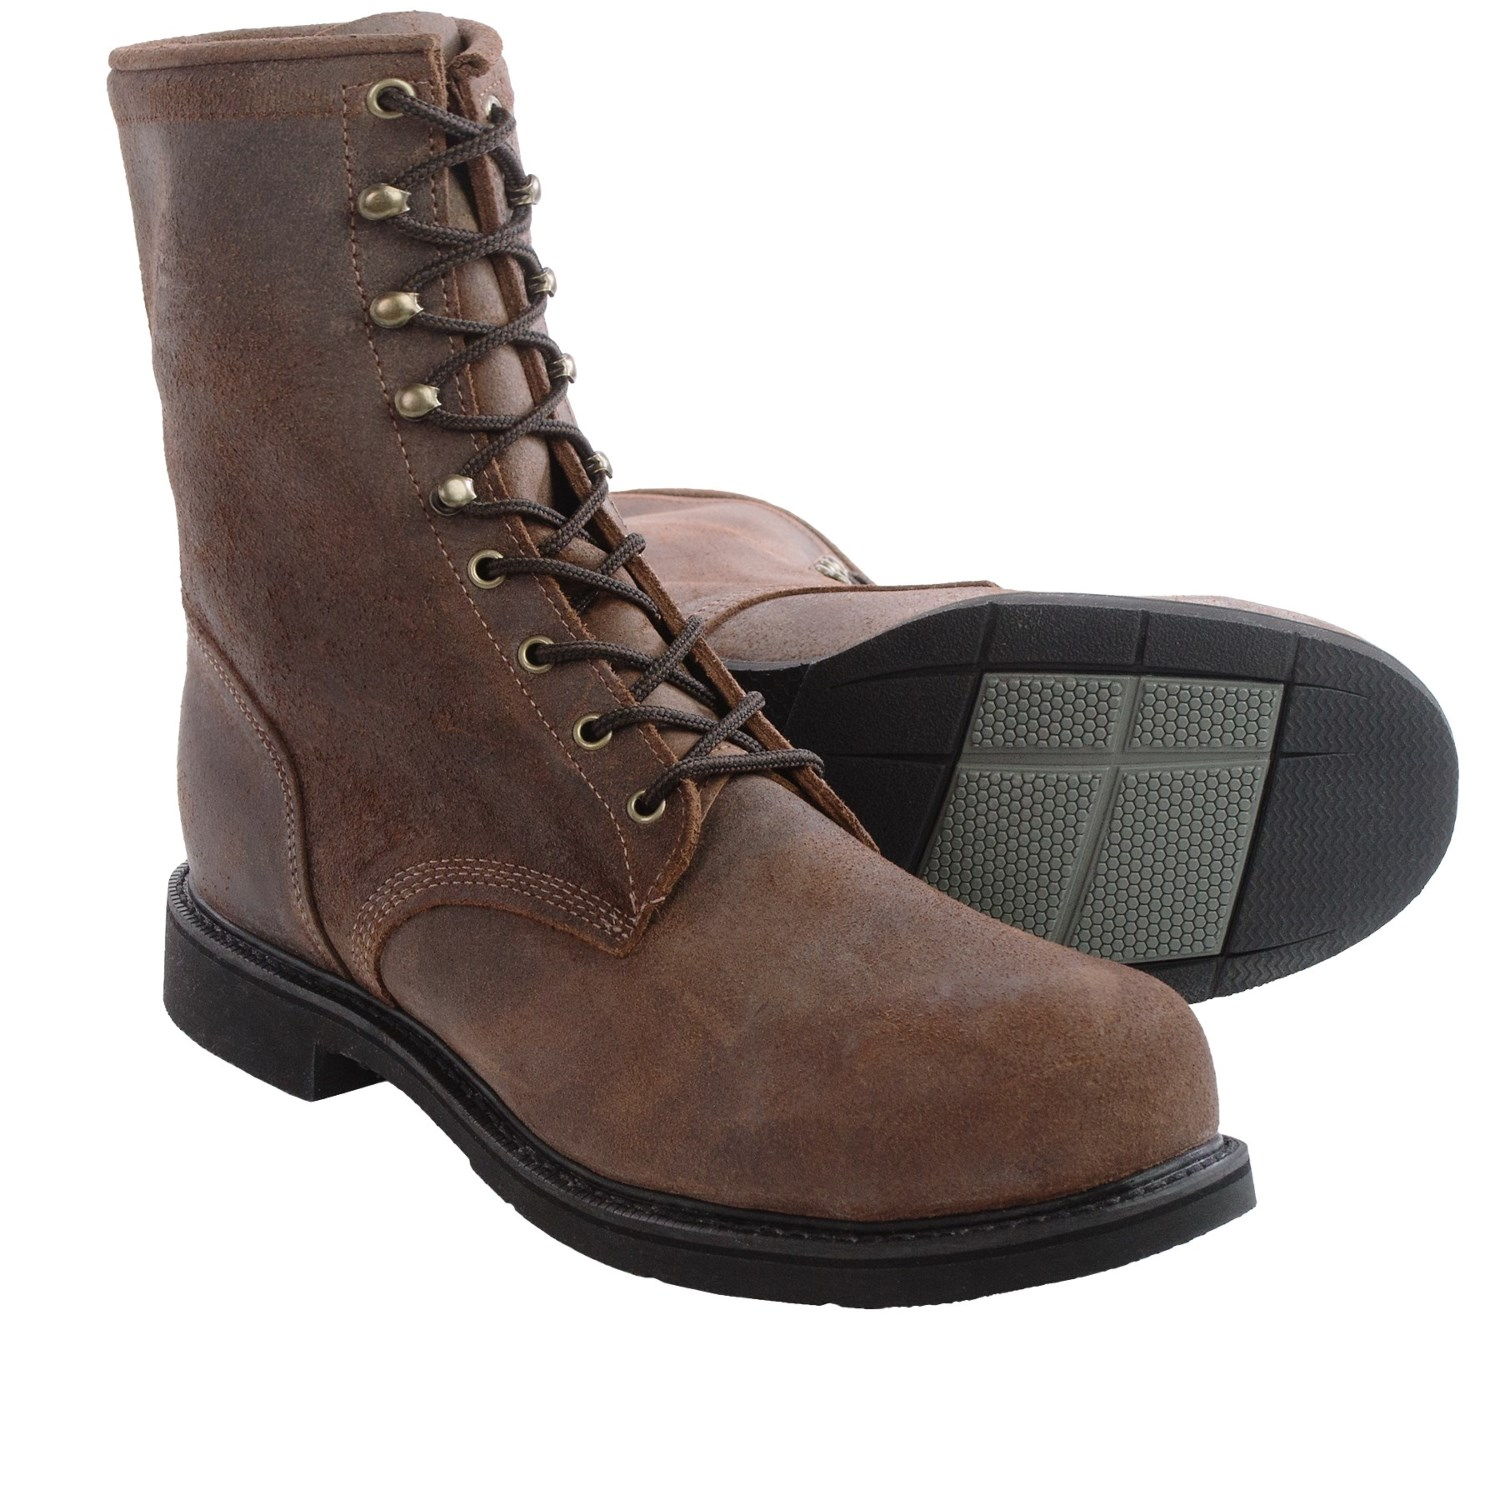 Leather Work Boots For Men Coltford Boots